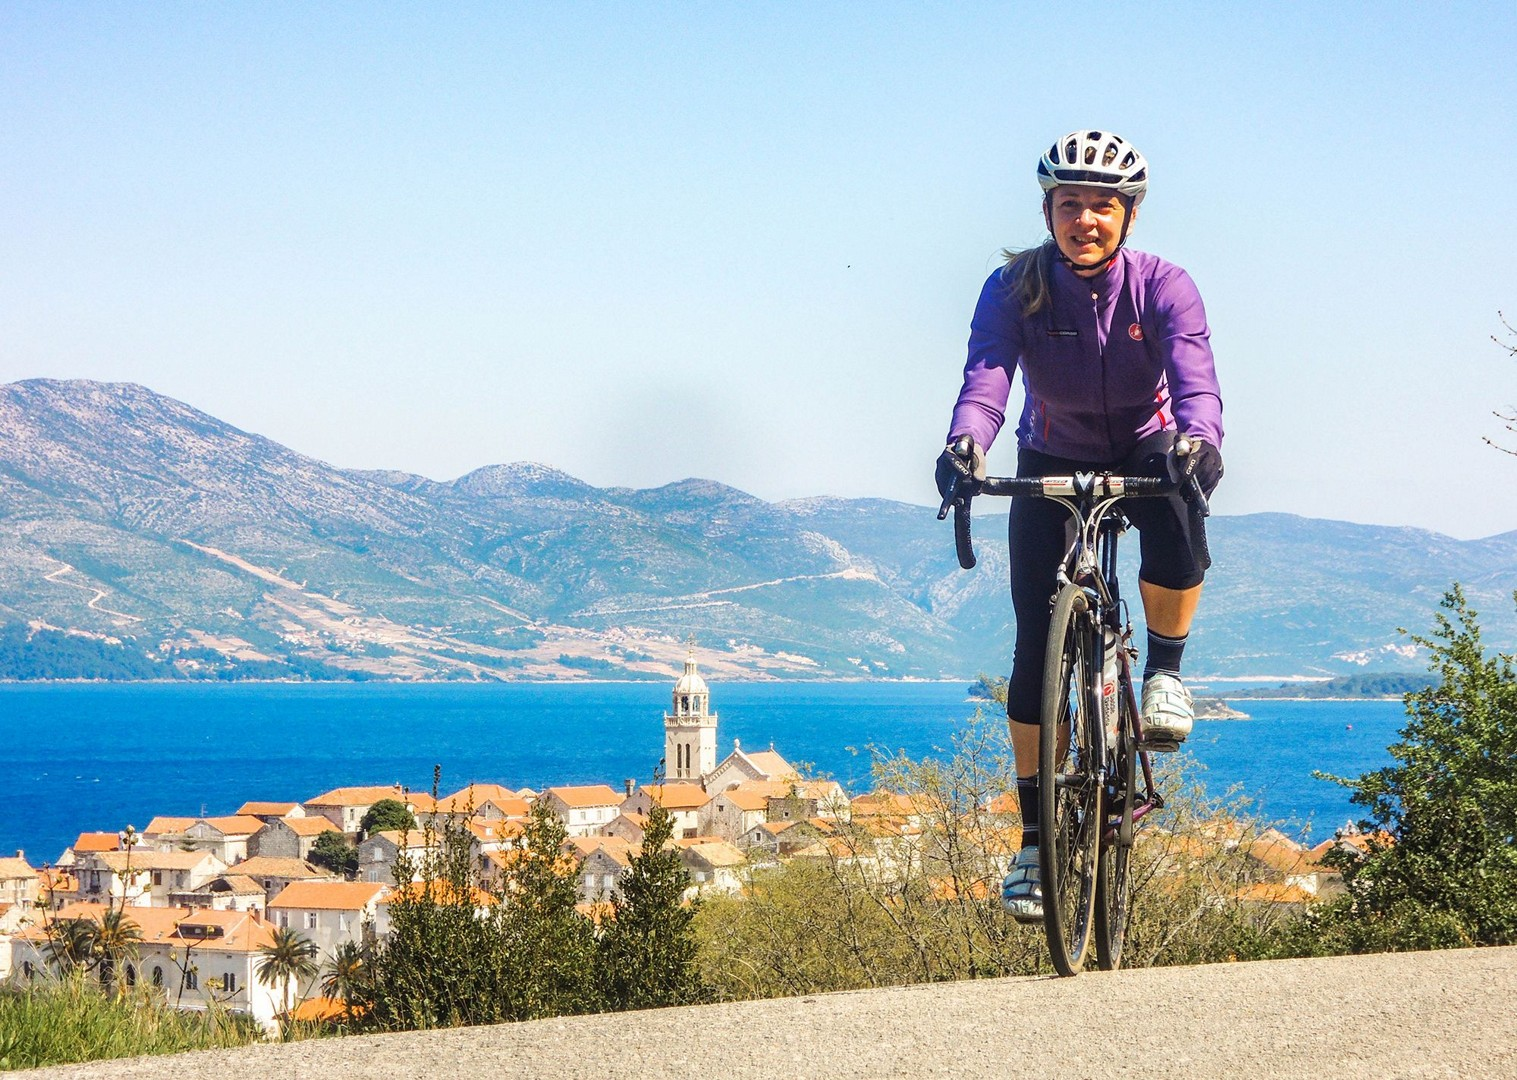 cycling-in-croatia-with-saddle-skedaddle-guided-road-tour.jpg - Croatia - Islands of the Dalmatian Coast - Guided Road Cycling Holiday - Road Cycling